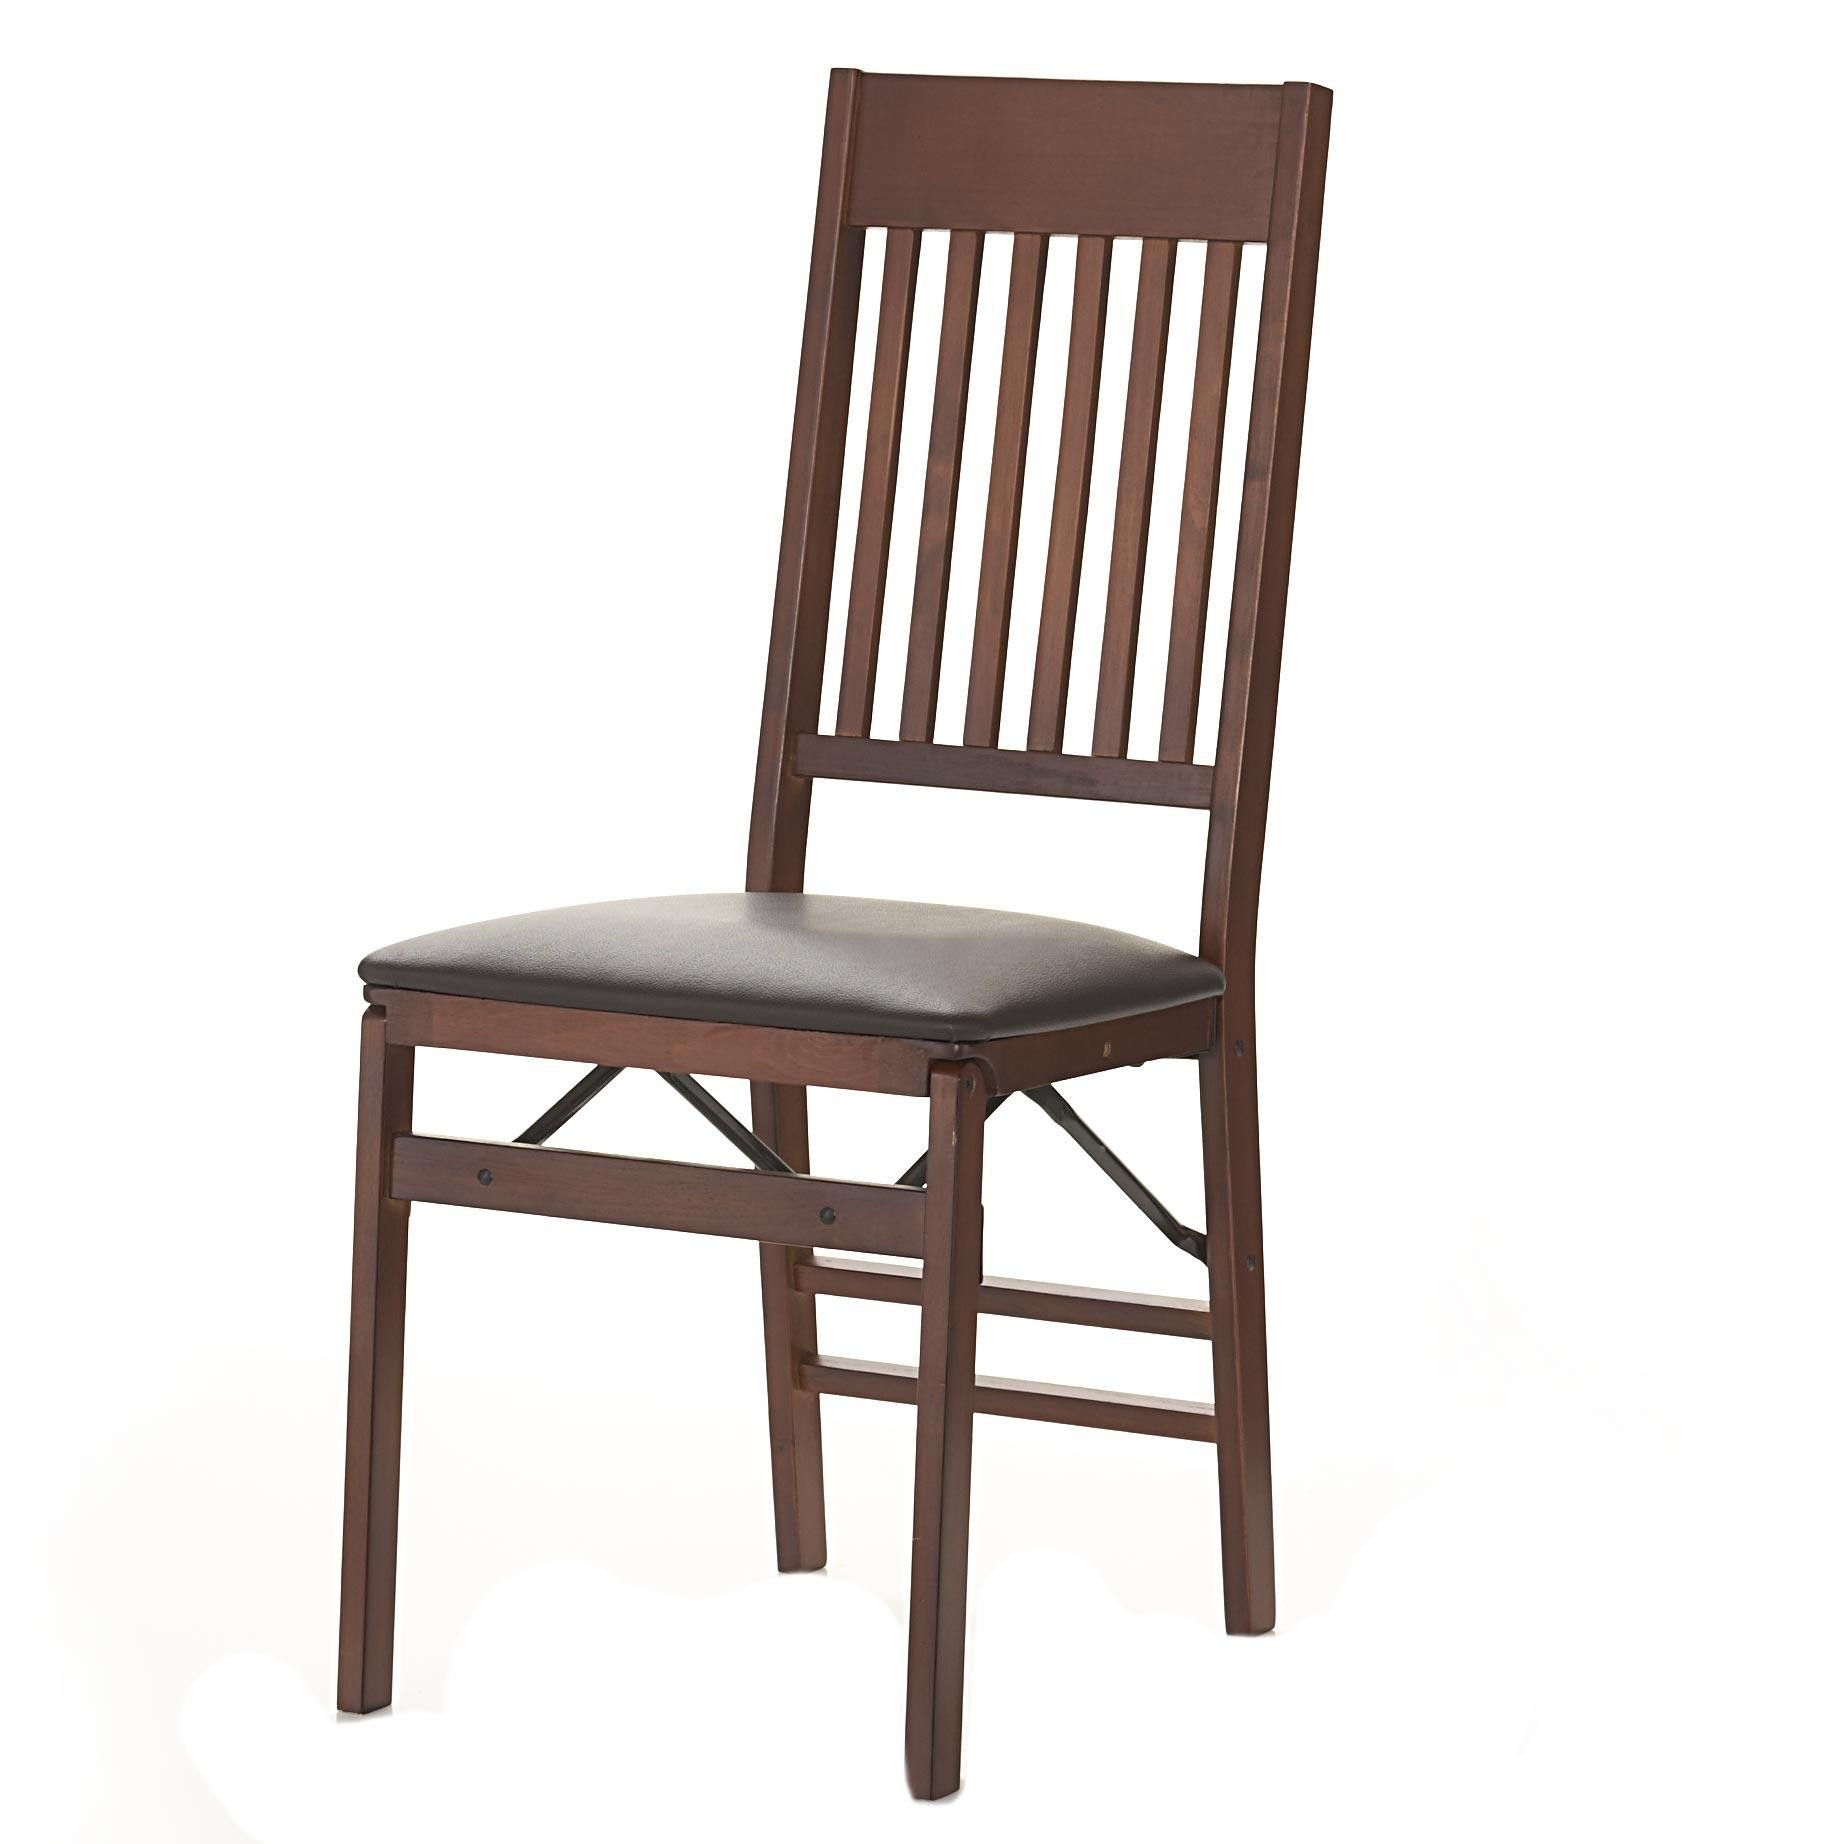 Sit down to dinner in style with a premium wood chair that